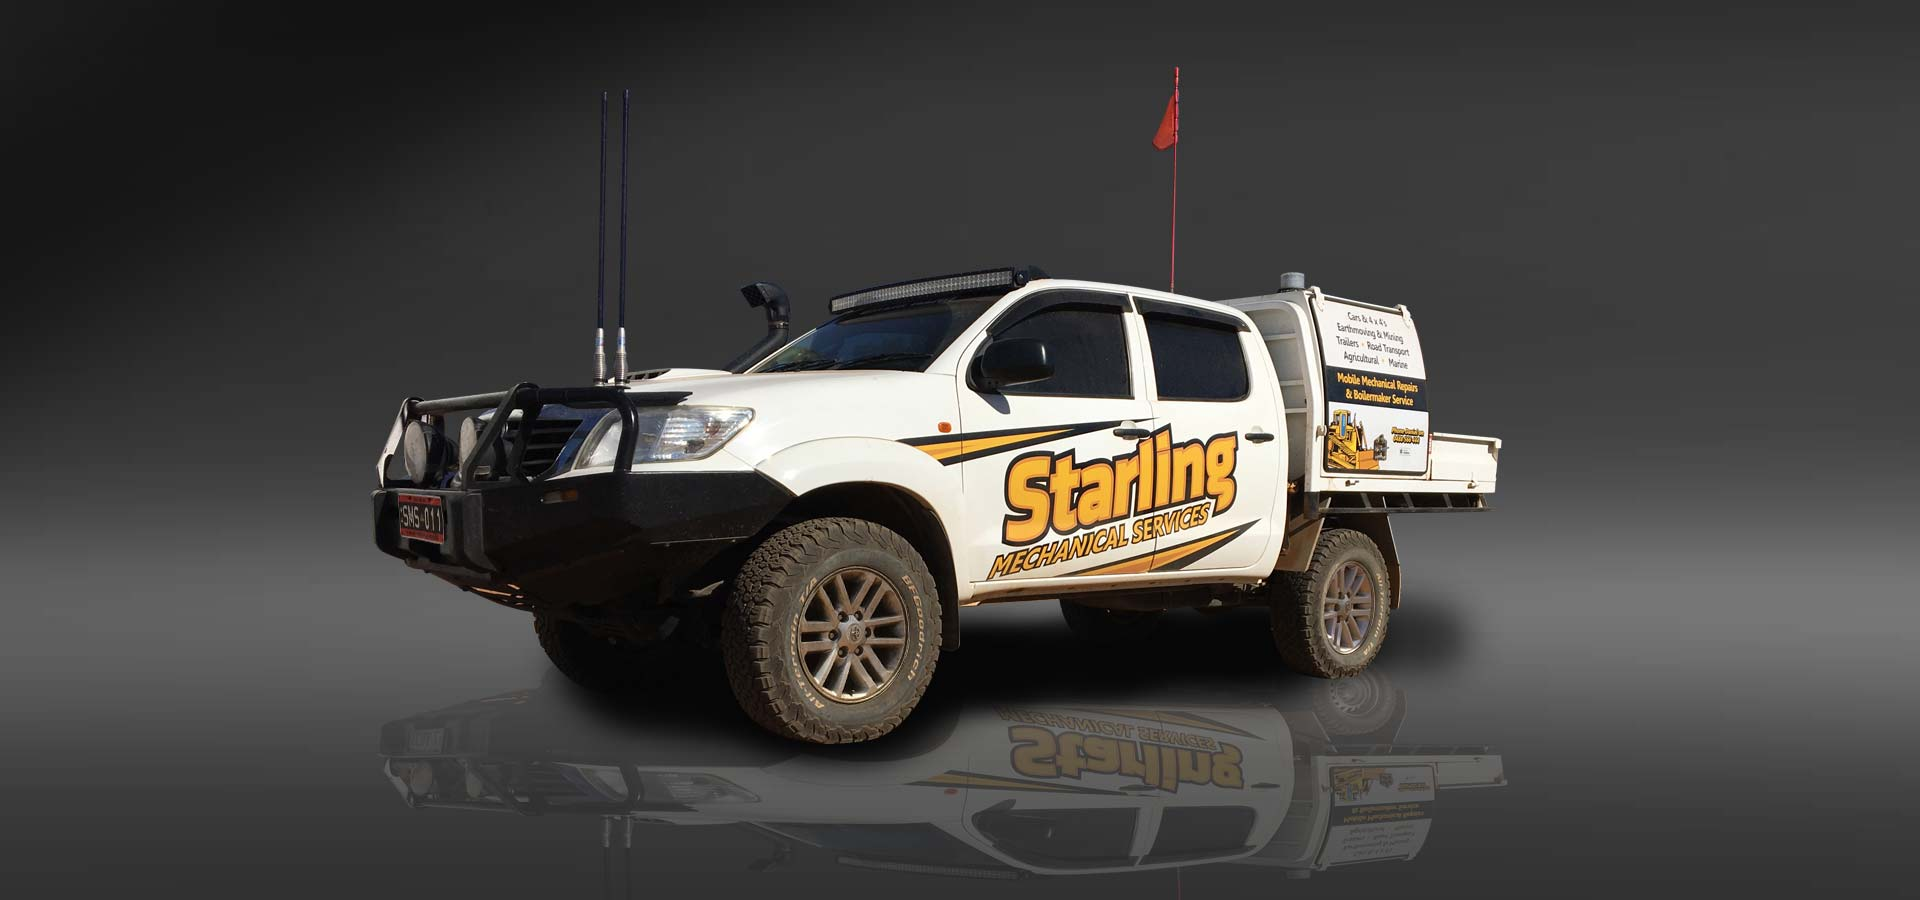 Starling Mechanical Services Geraldton